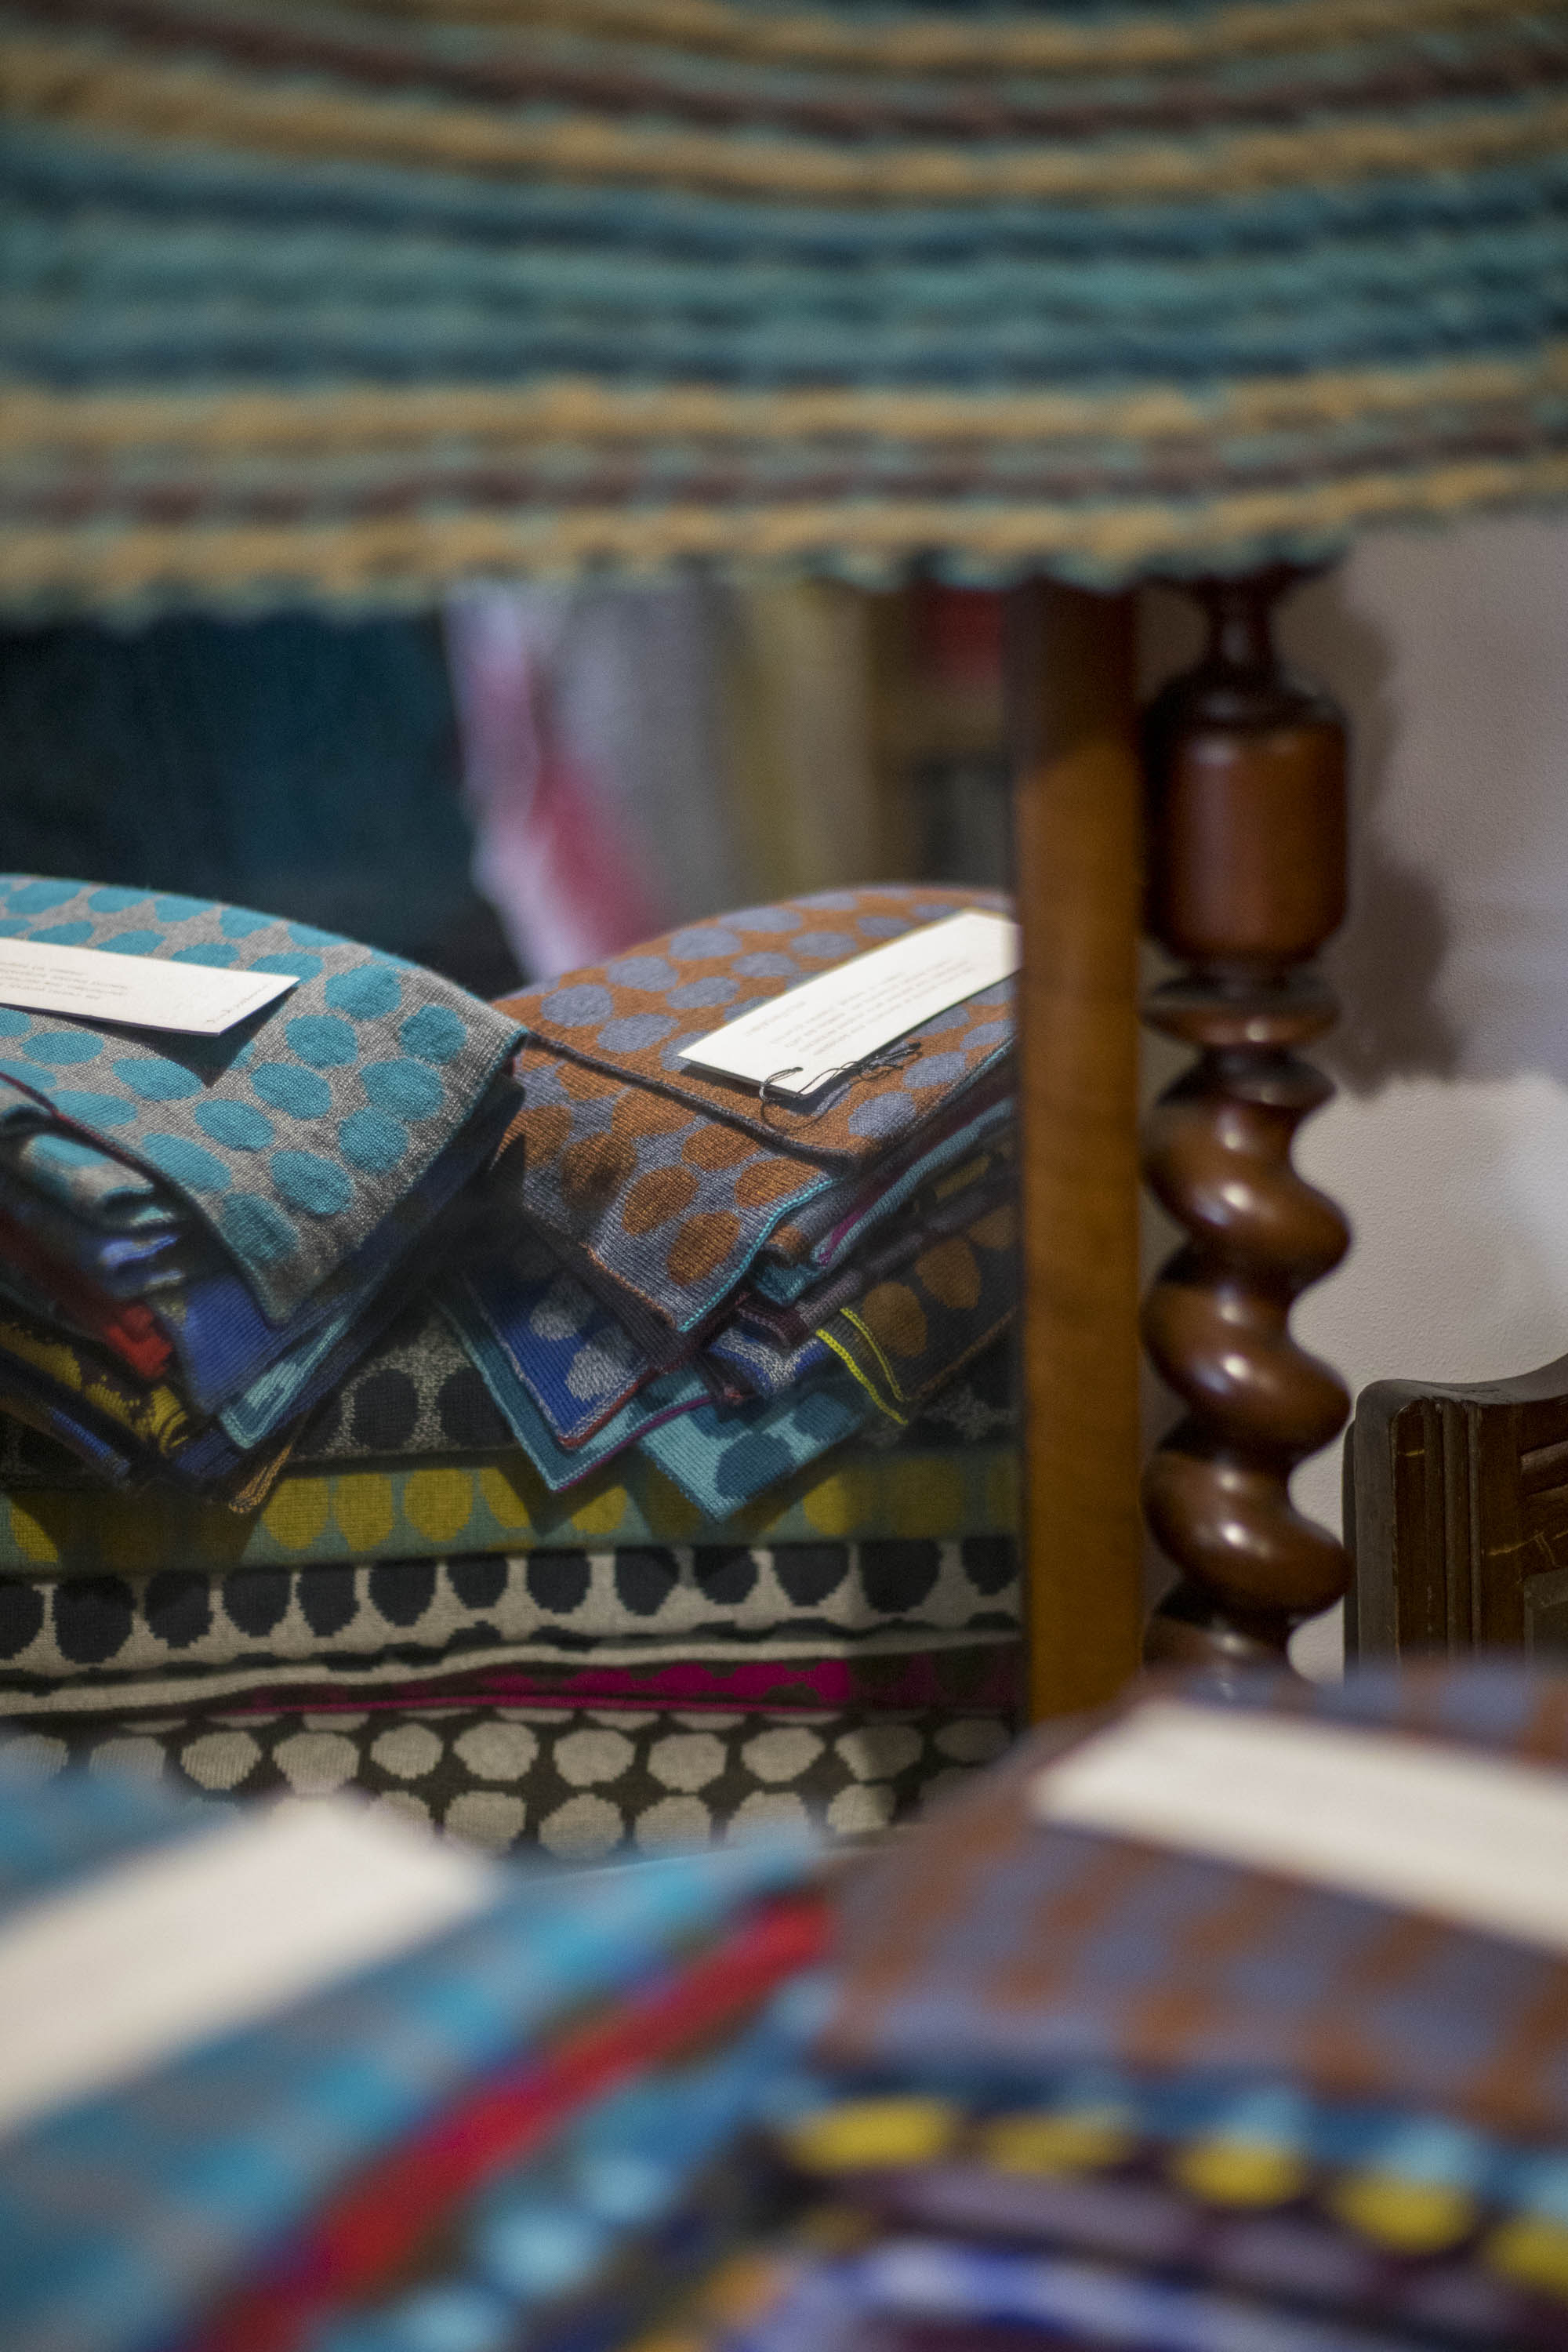 Stacks of contemporary knitwear on antique furniture in the Nielanell studio shop, Shetland